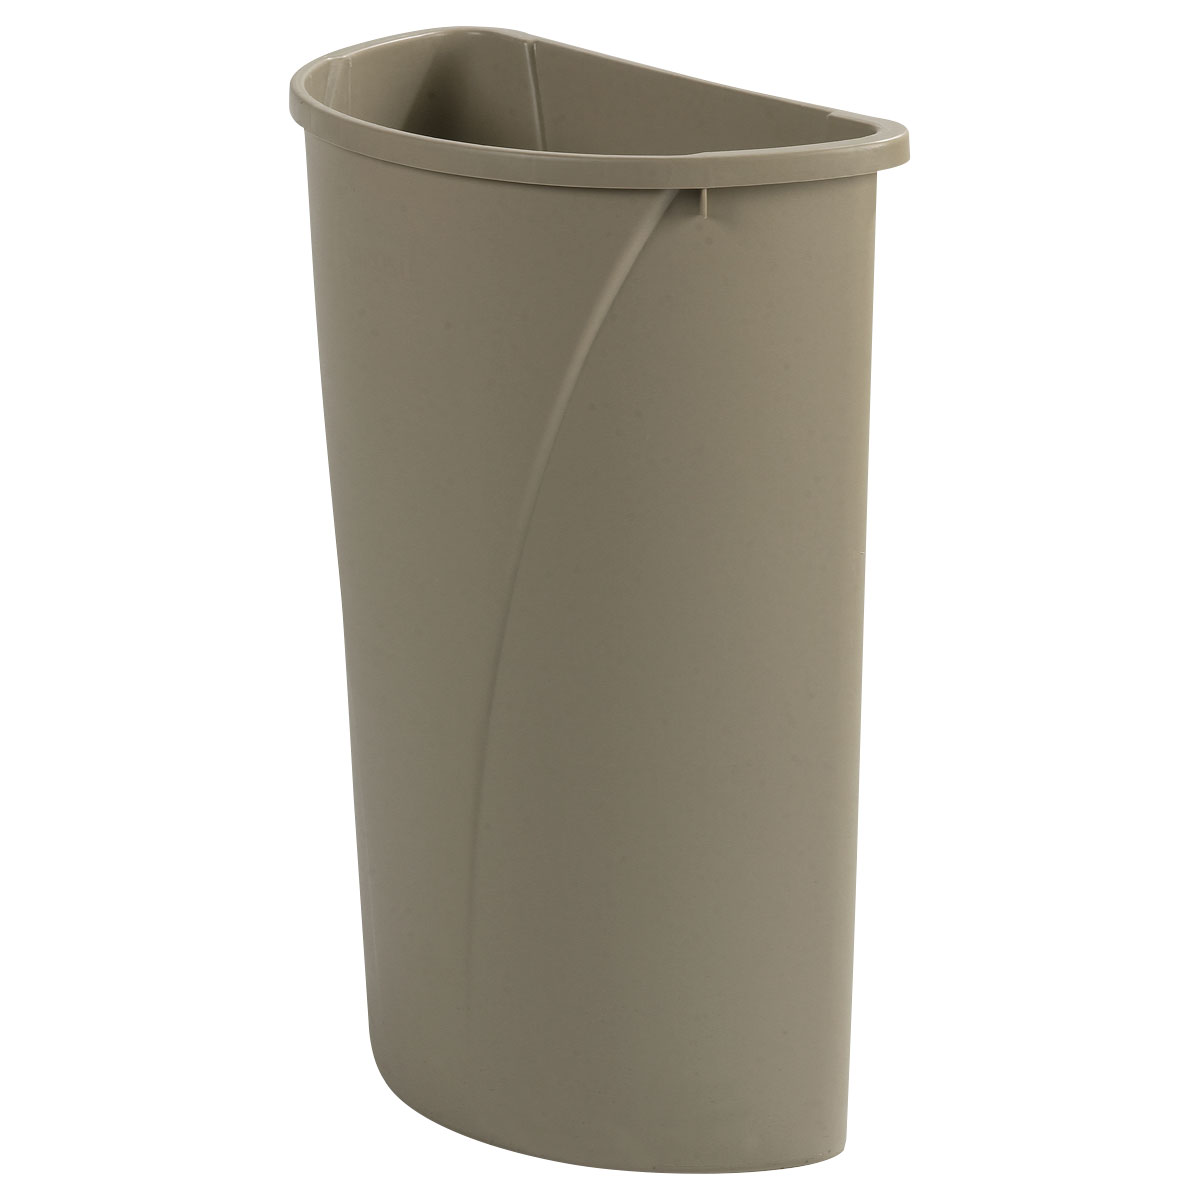 Carlisle 34302106 21-gallon Commercial Trash Can - Plastic, Half Round, Built-in Handles